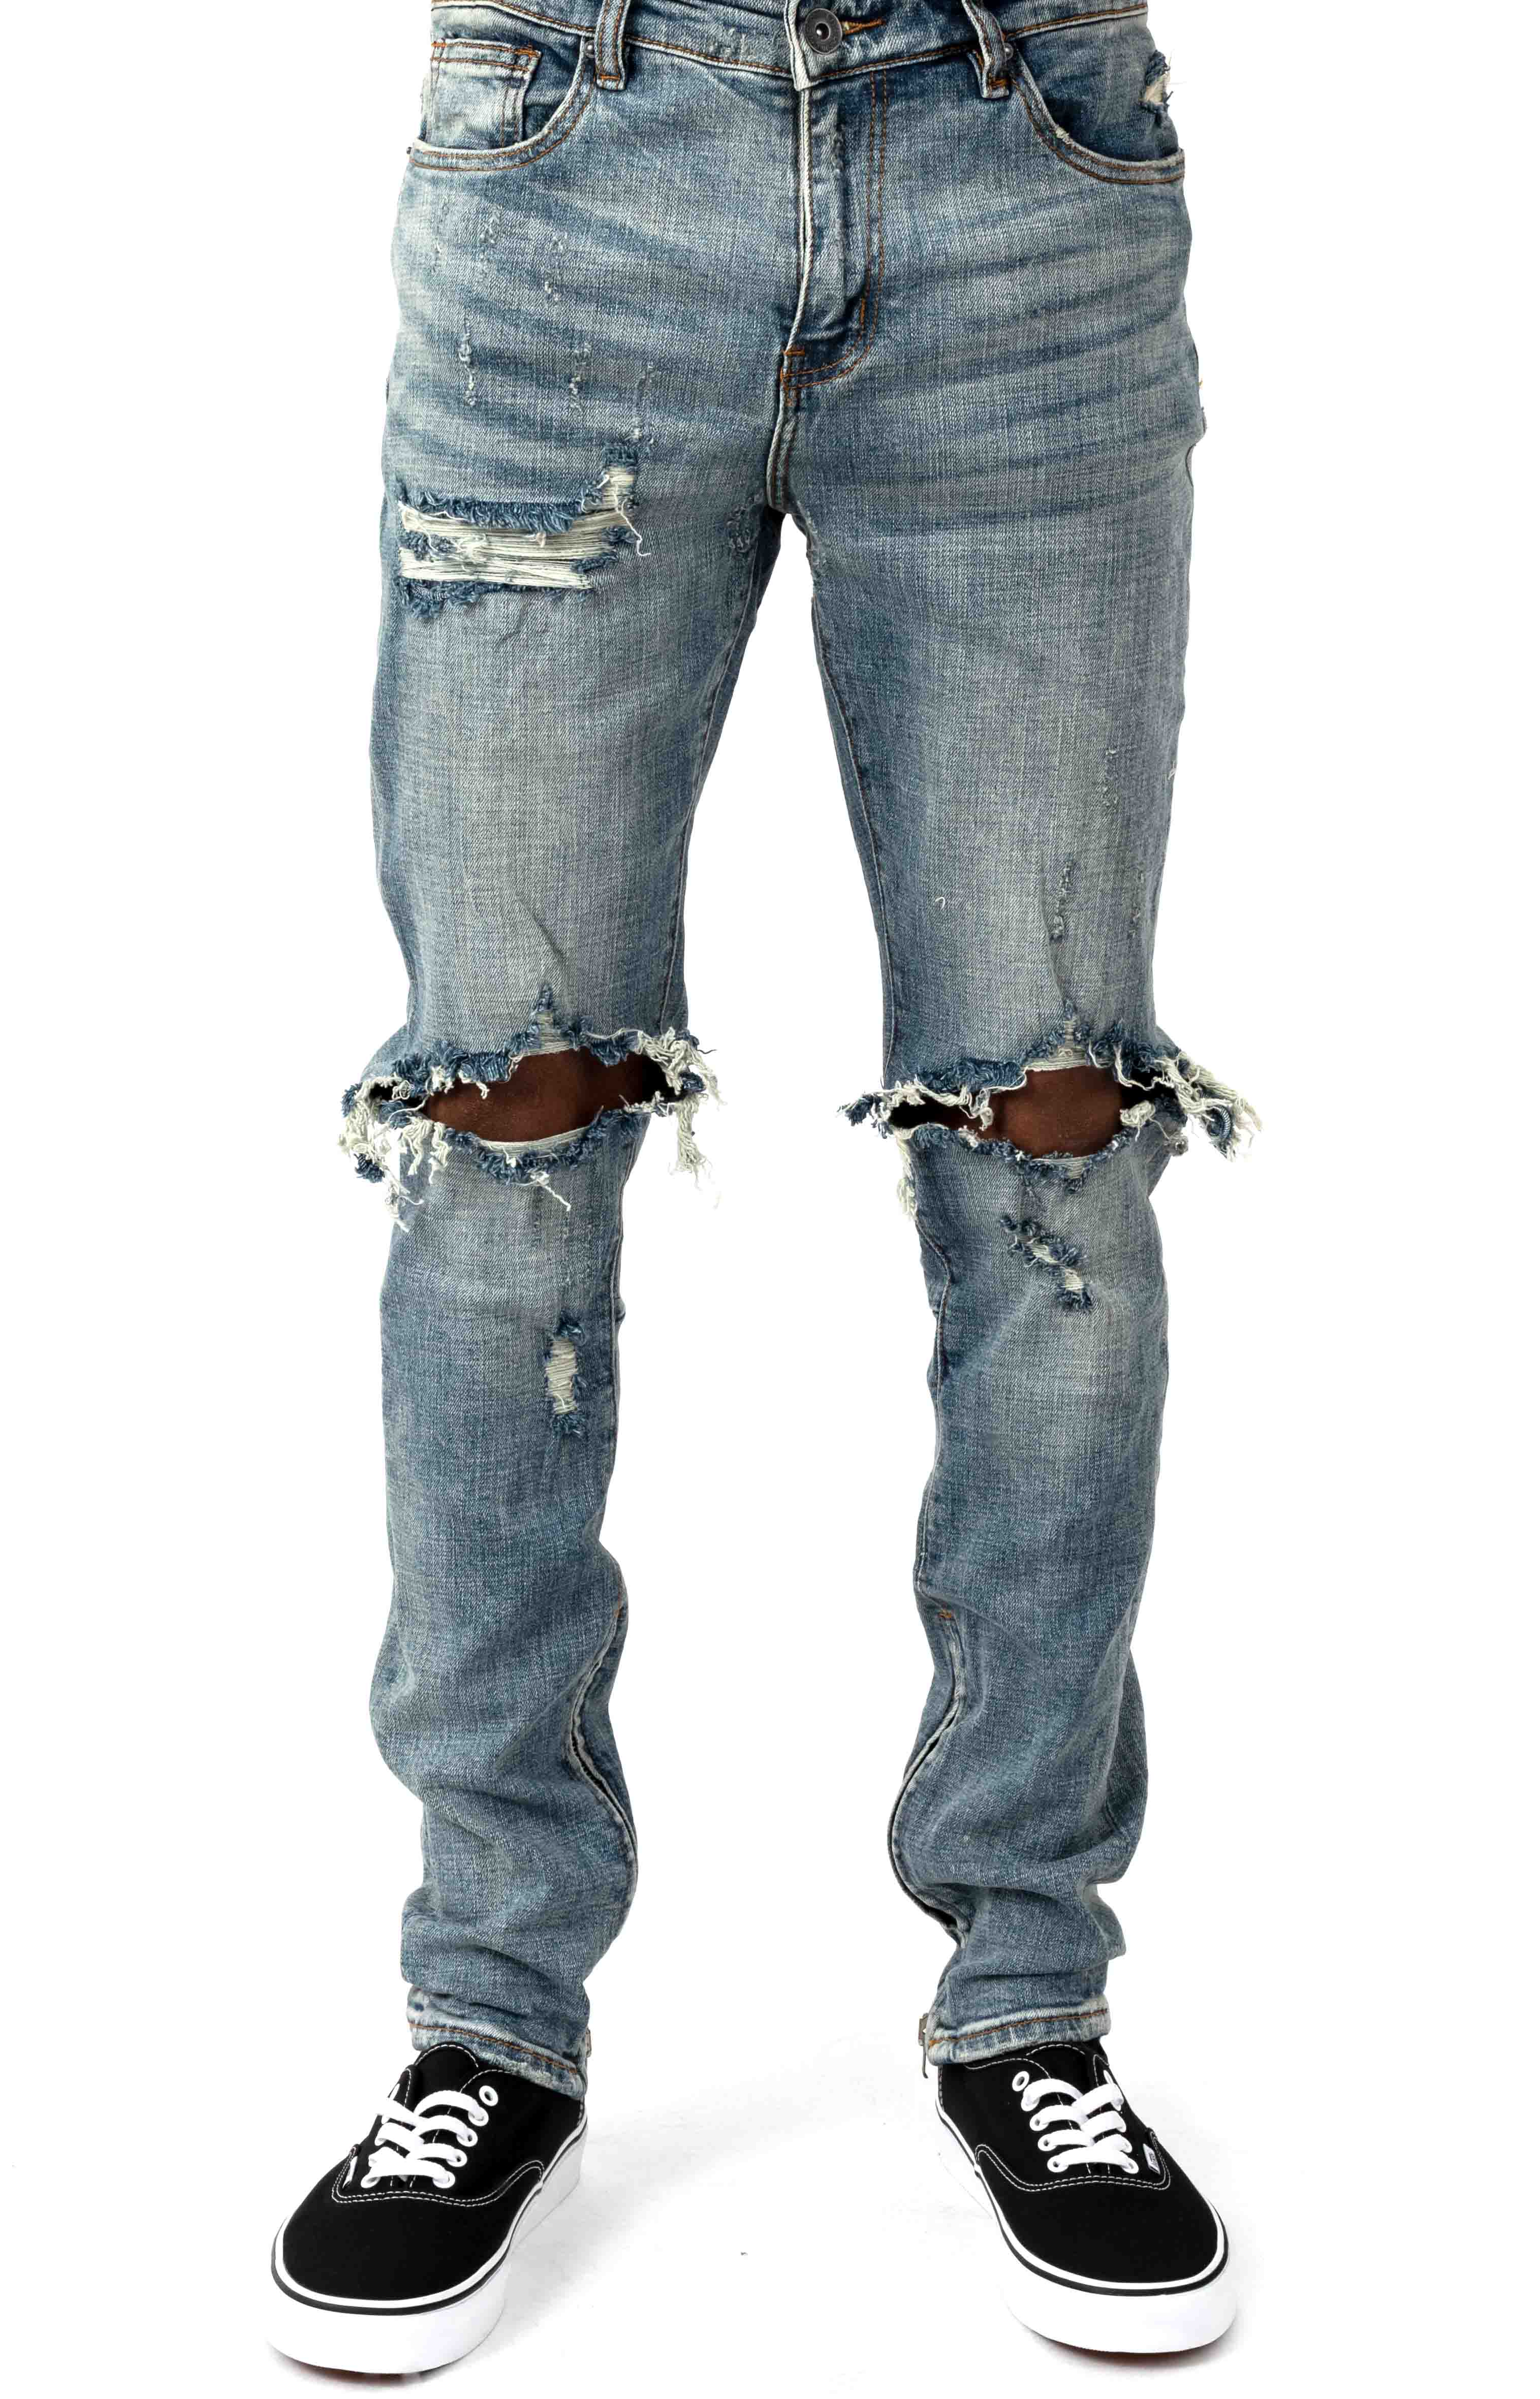 (PAC-131) Pacific Denim Jeans - Stone Wash Blue Ripped